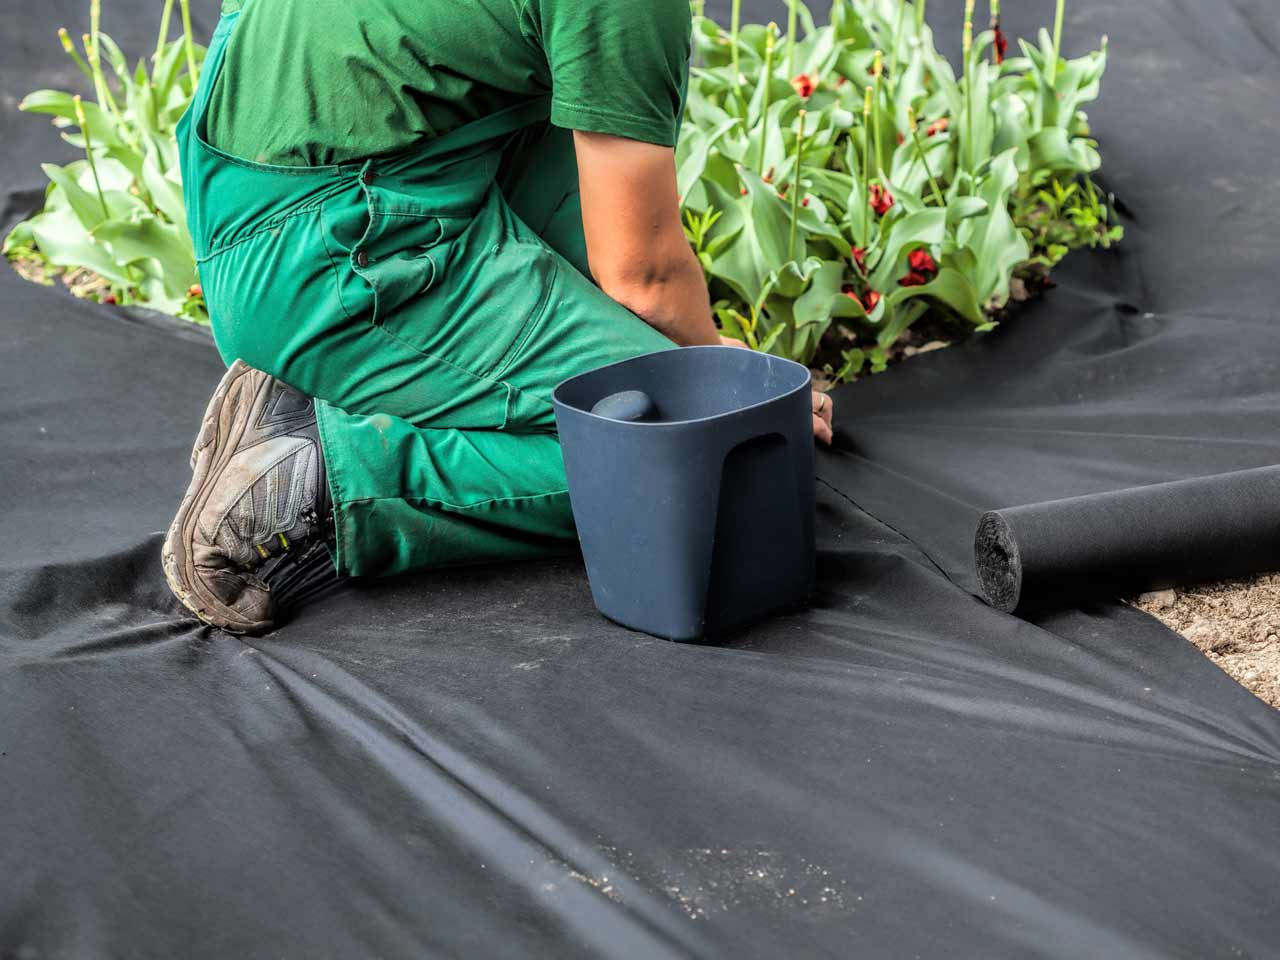 Landscaping Black Plastic Sheeting : Tips for using ground covers weed control saga